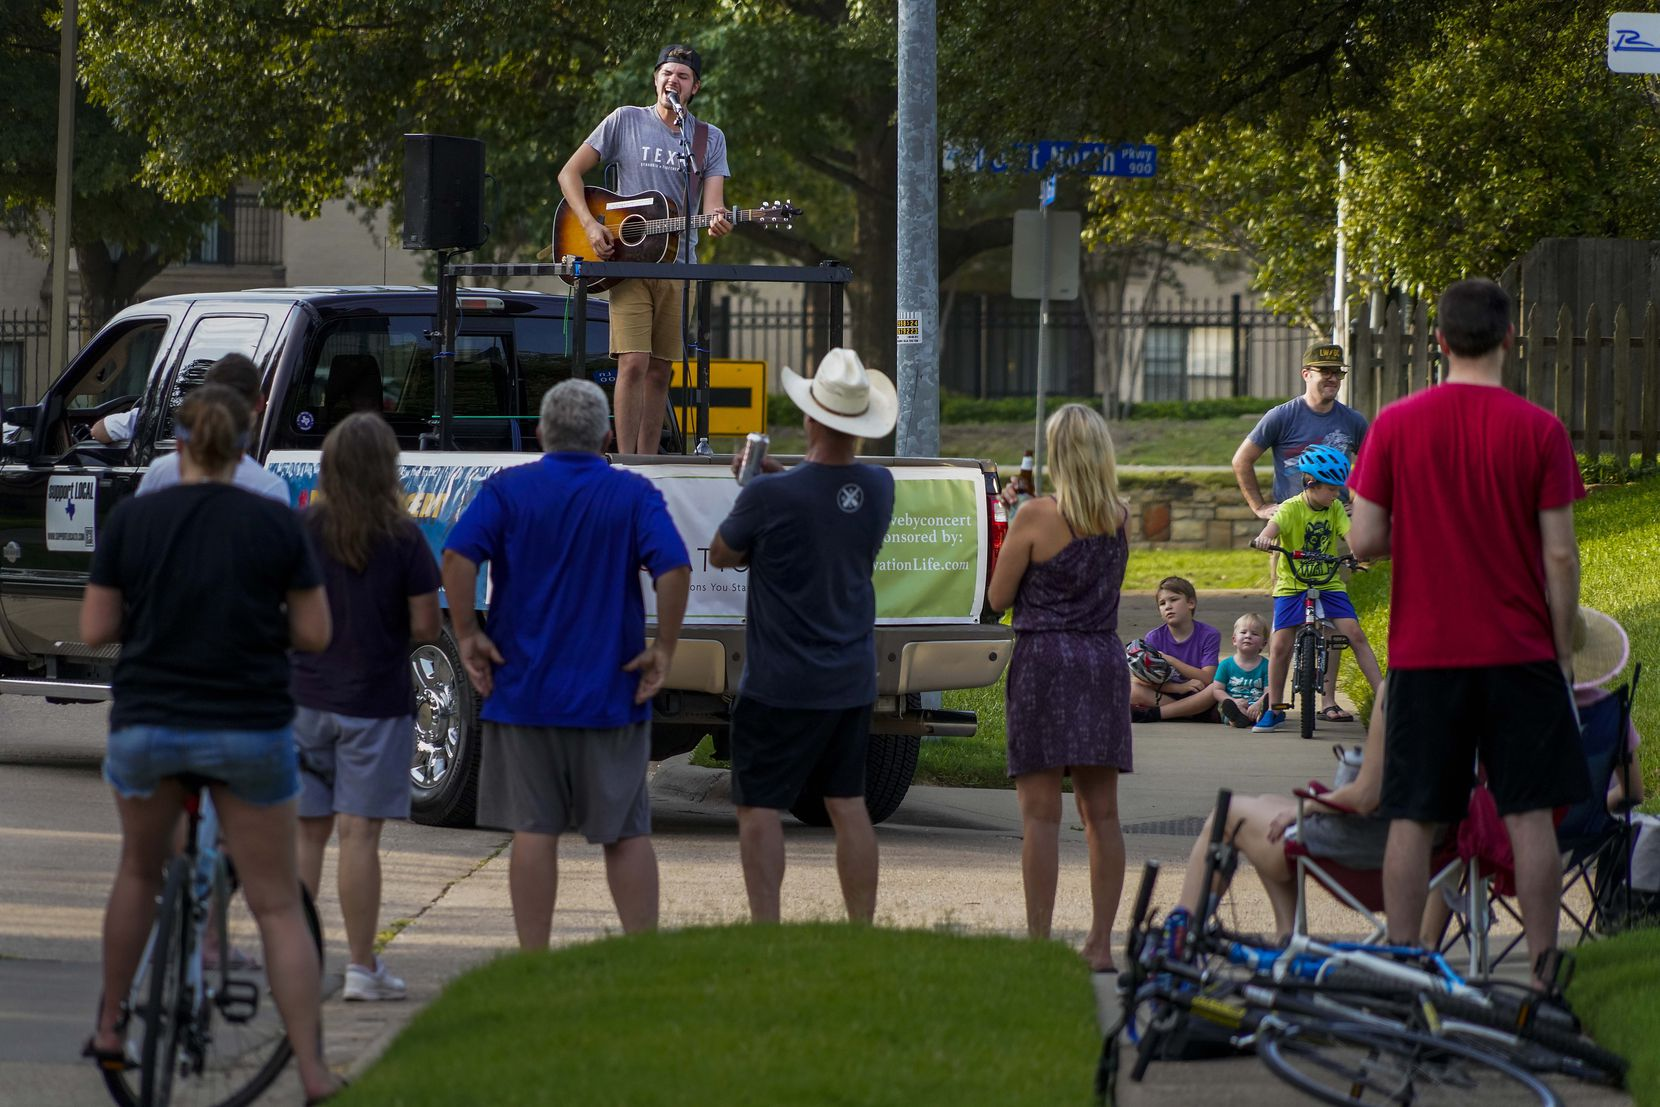 Cameron Havens sings from the back of a pickup truck during a 'Drive By Concert' through the Canyon Creek subdivision on Thursday, July 2, 2020, in Richardson. The concert stopped in front of different houses throughout the neighborhood as part of series of Drive-By Concerts sponsored by Plano Magazine and Ovation Health & Life Services in Plano and surrounding neighborhoods.